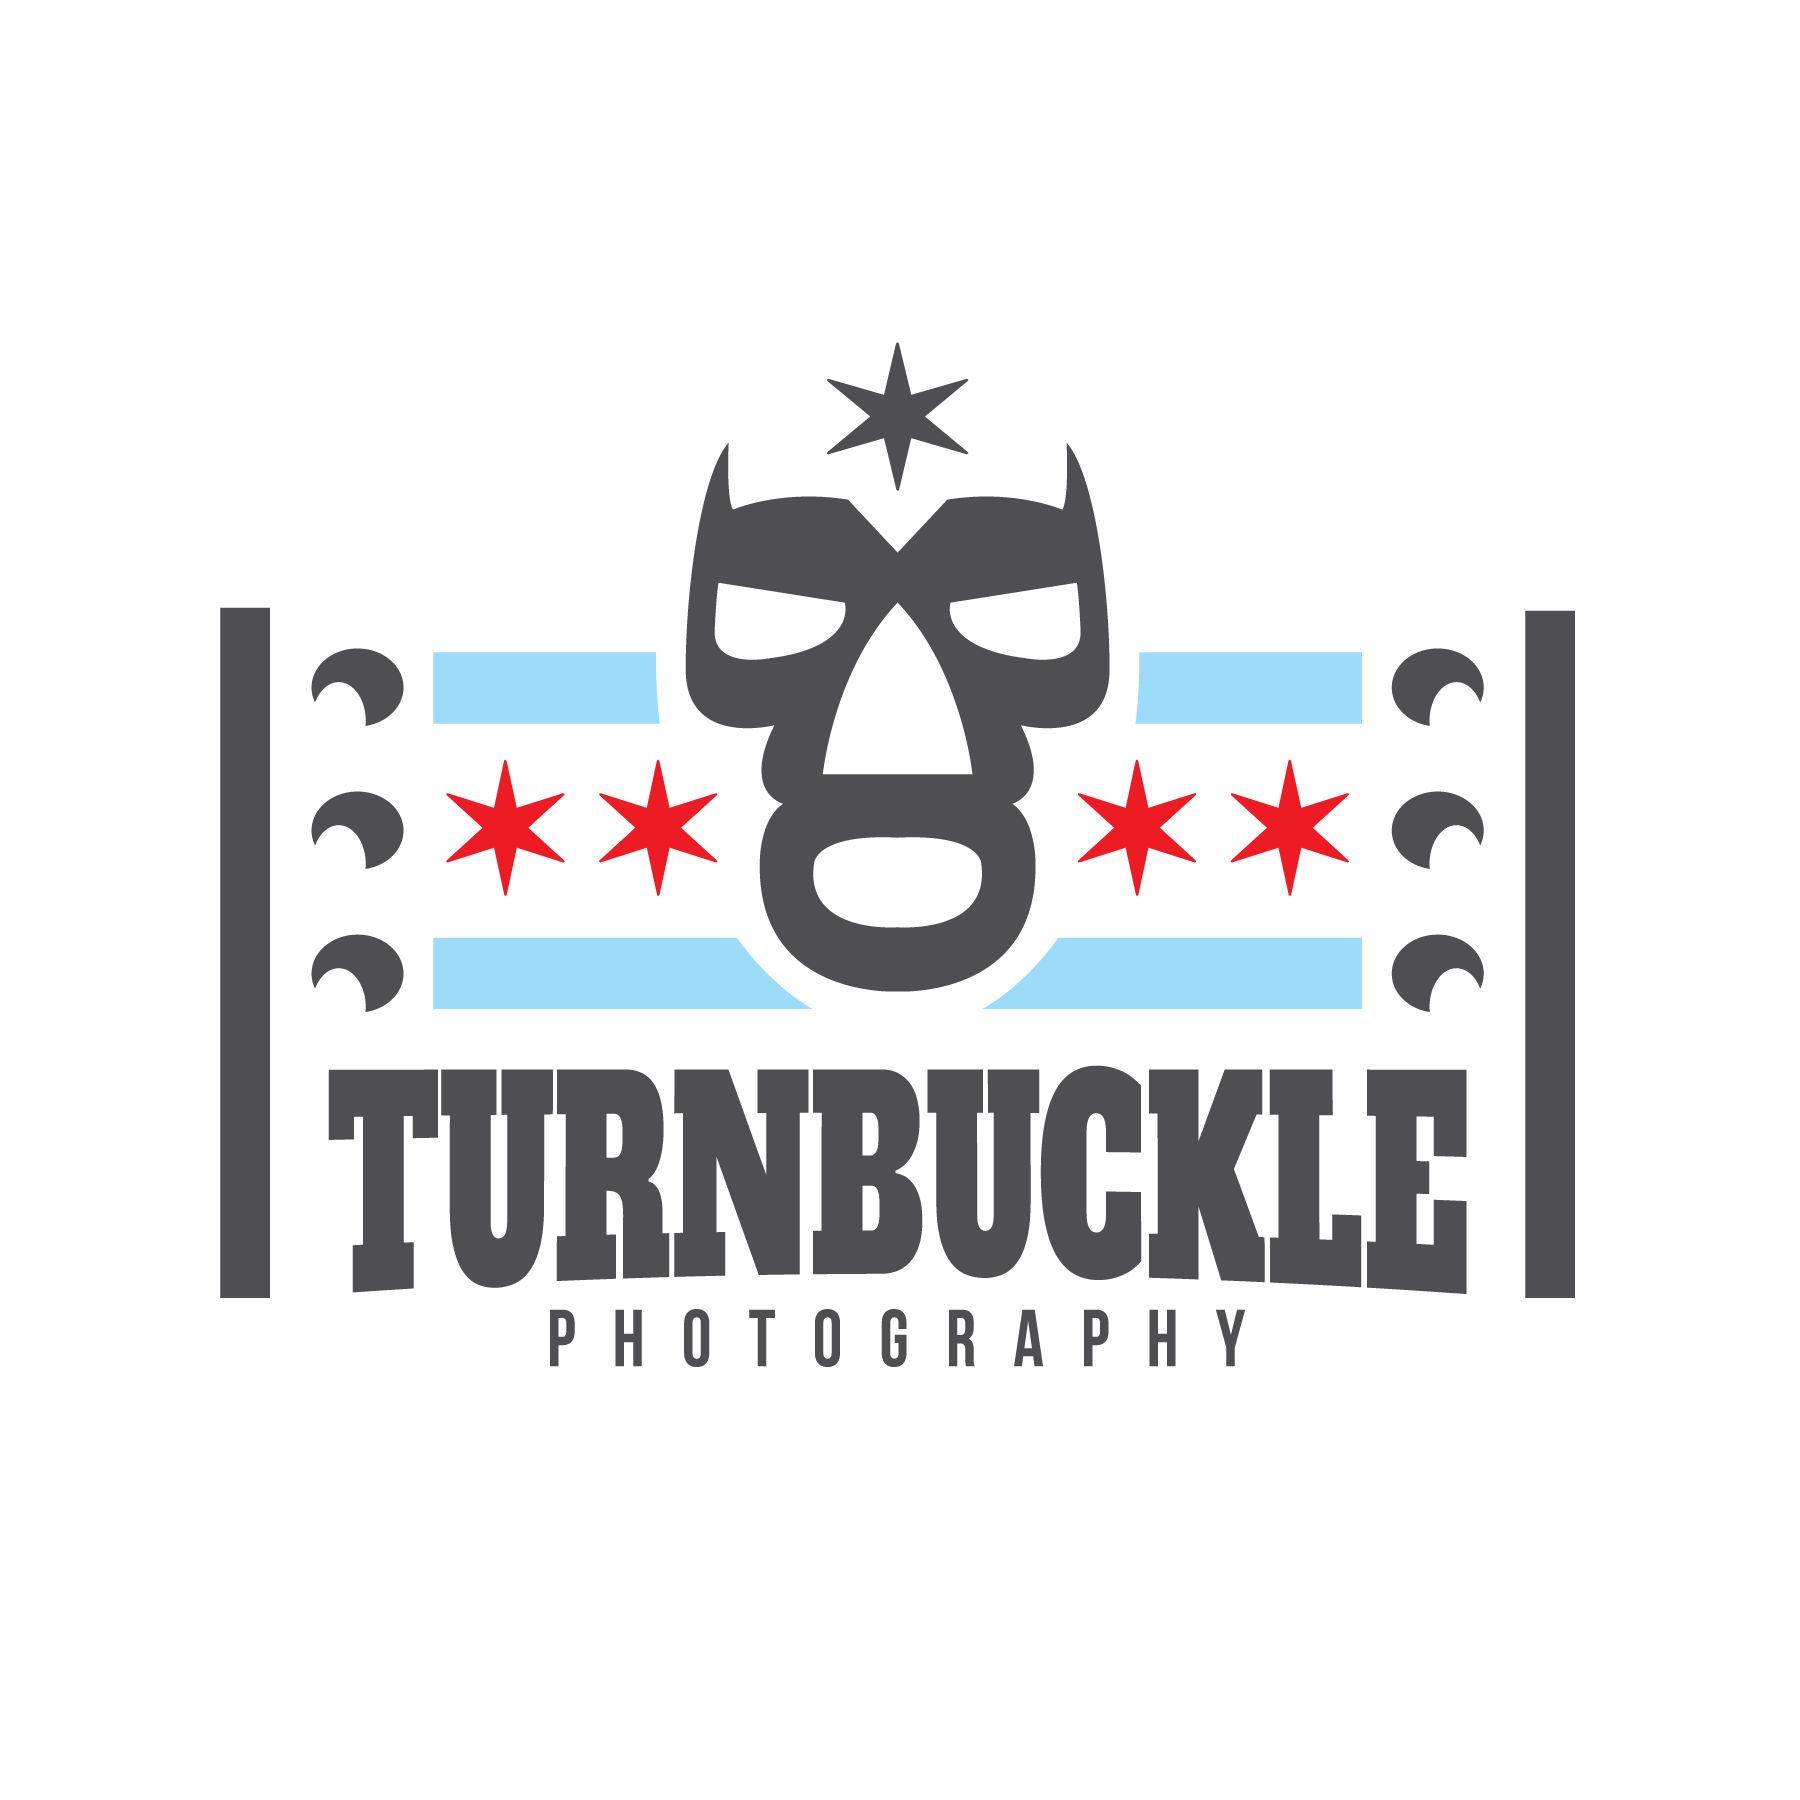 Create a pro wrestling logo for photography business